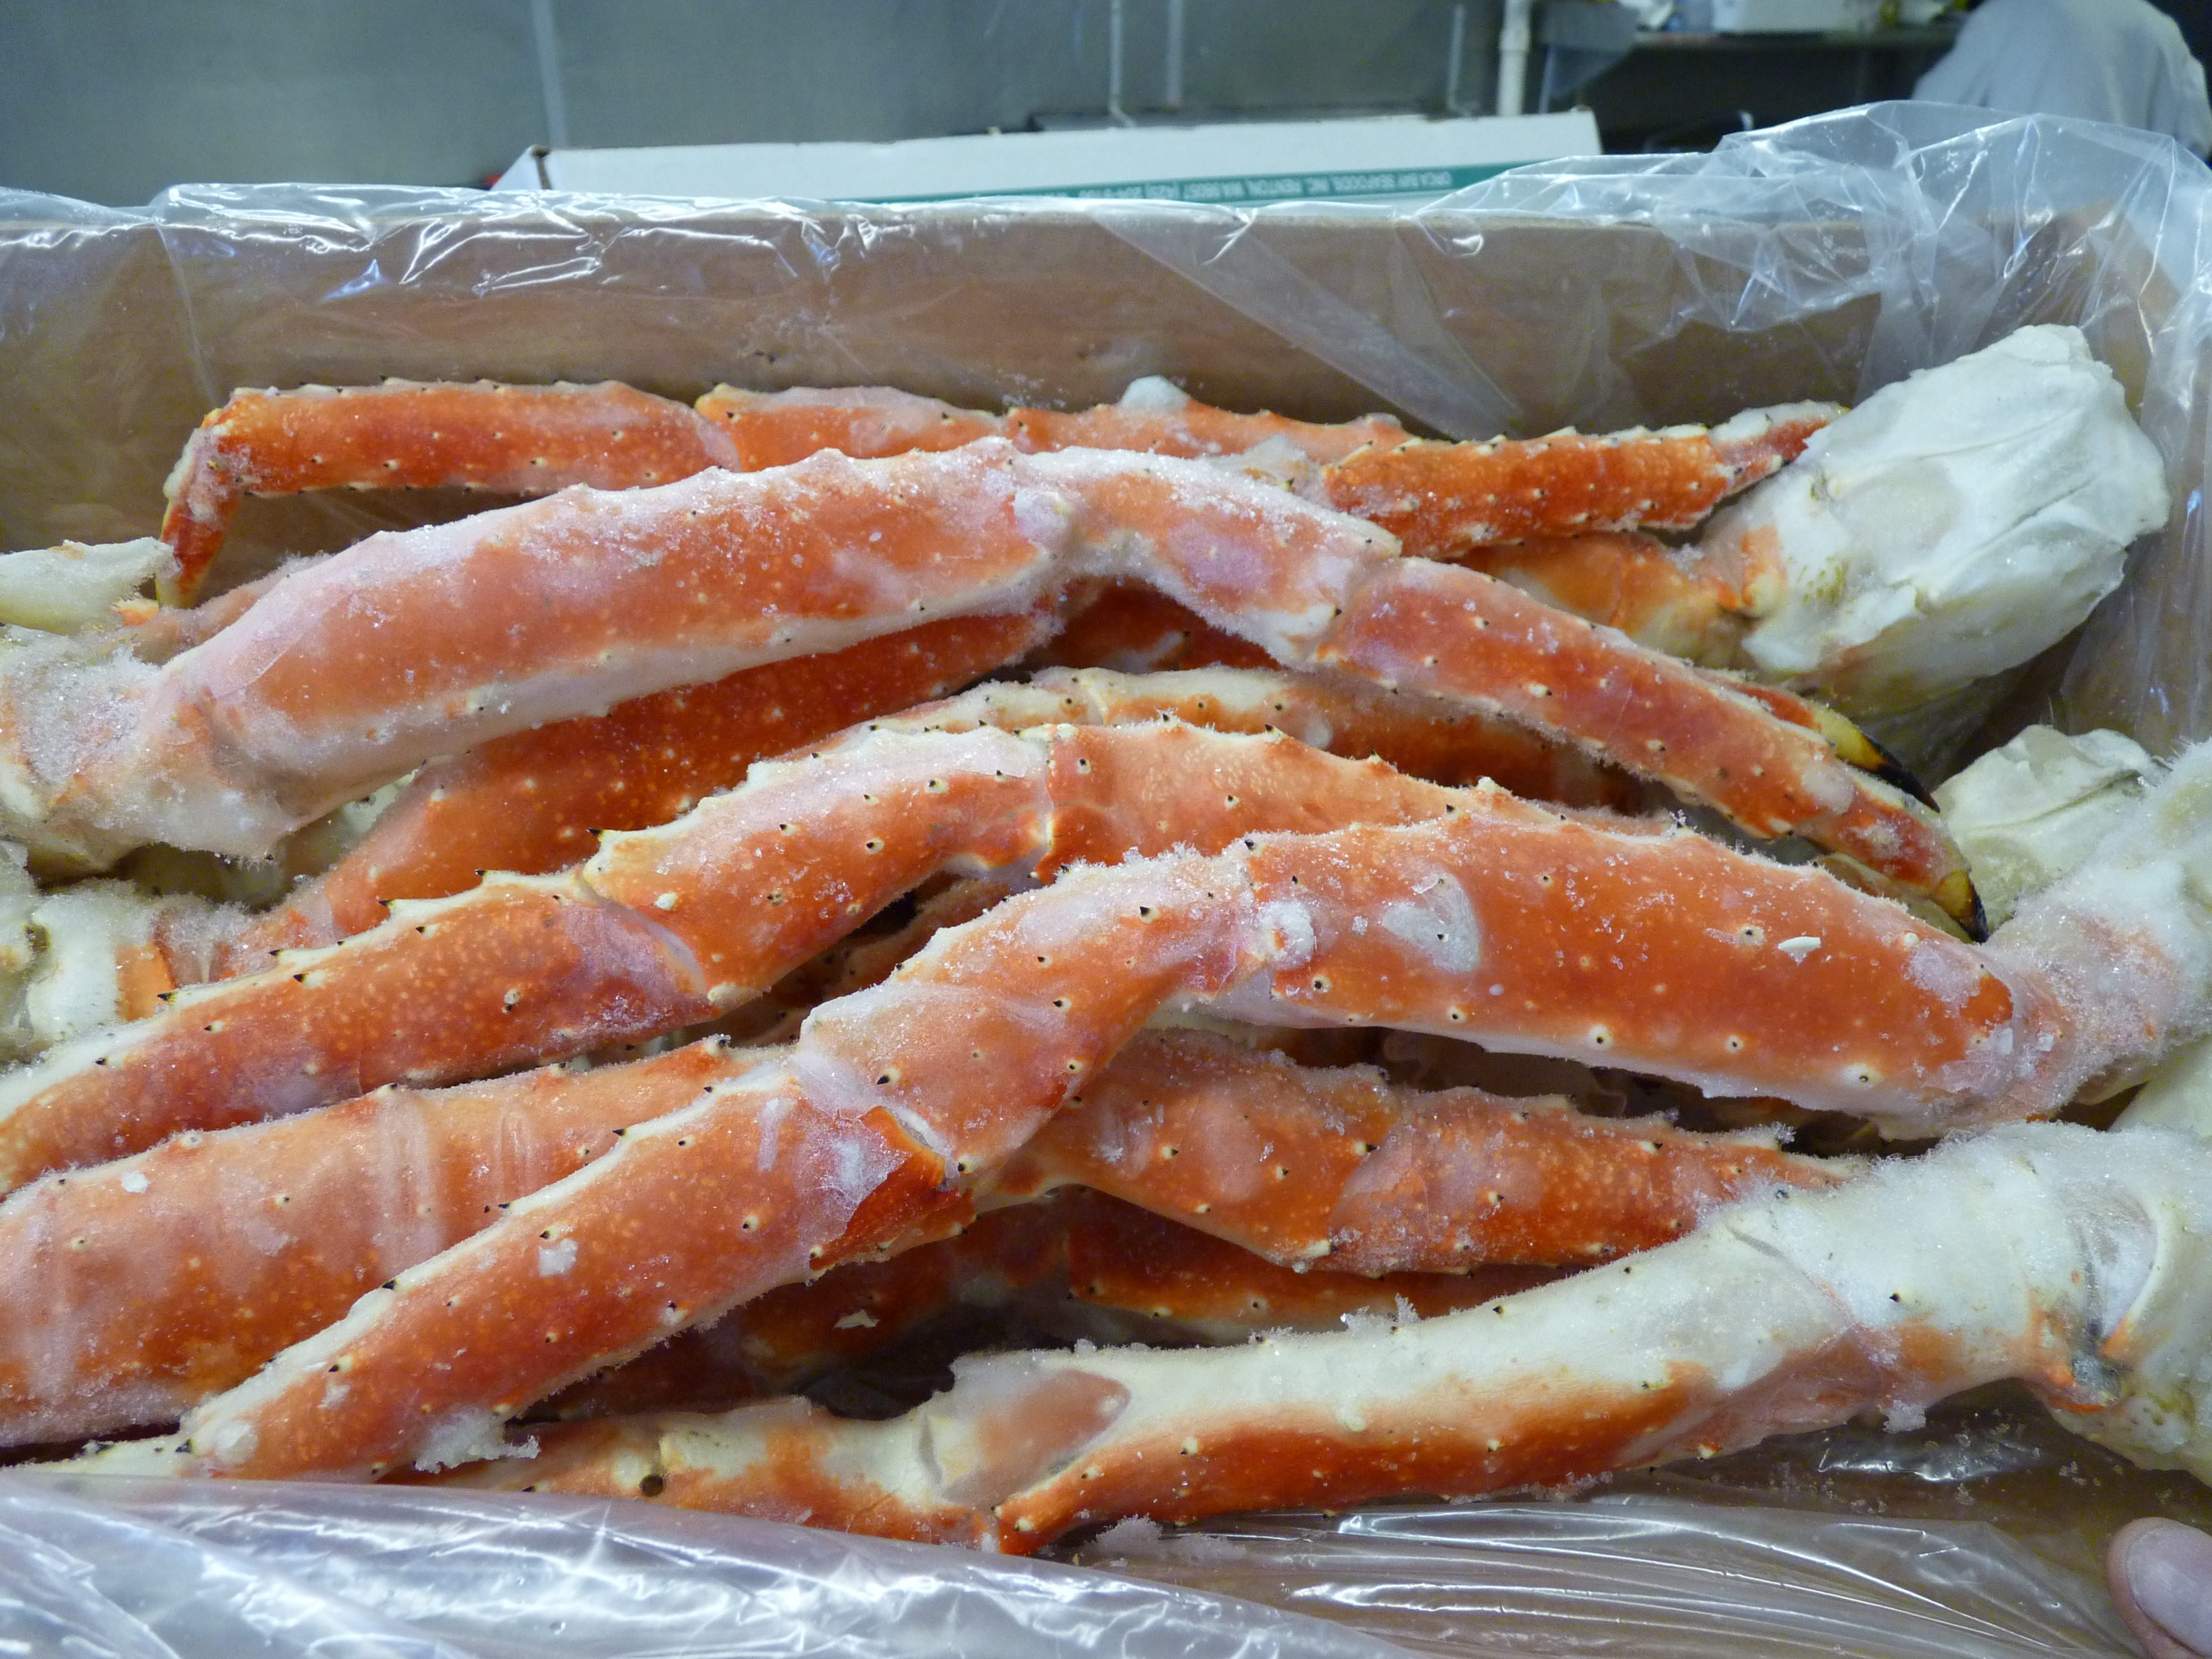 Fresh seafood and scenes from Archar Seafood in the Somerset Section of Franklin Township.